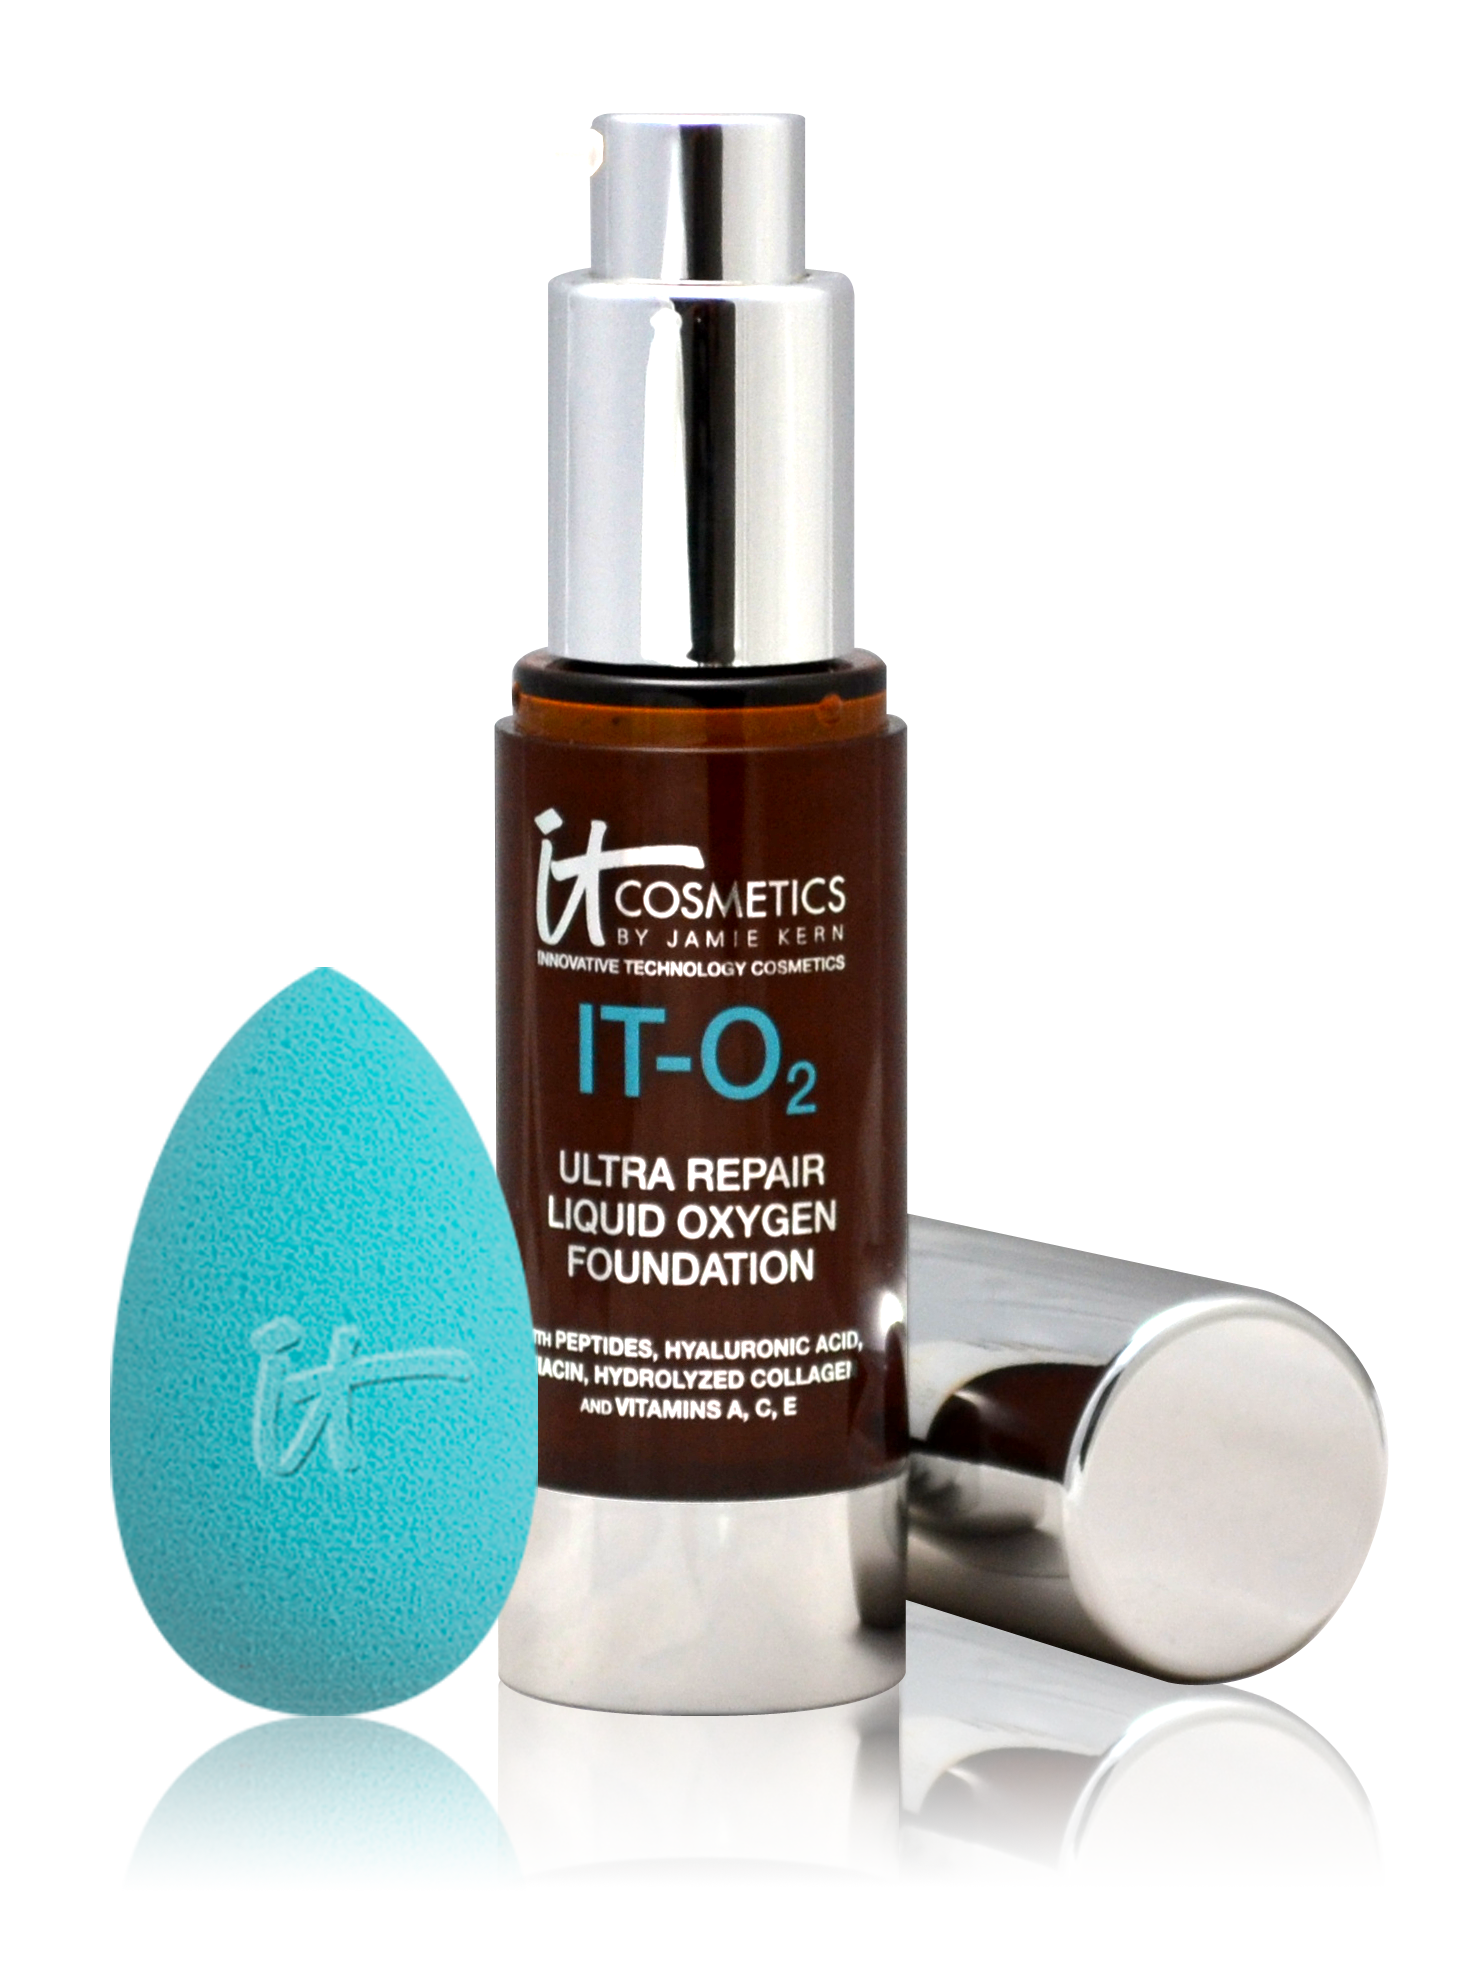 IT-02 Ultra Repair Liquid Oxygen Foundation by iT Cosmetics